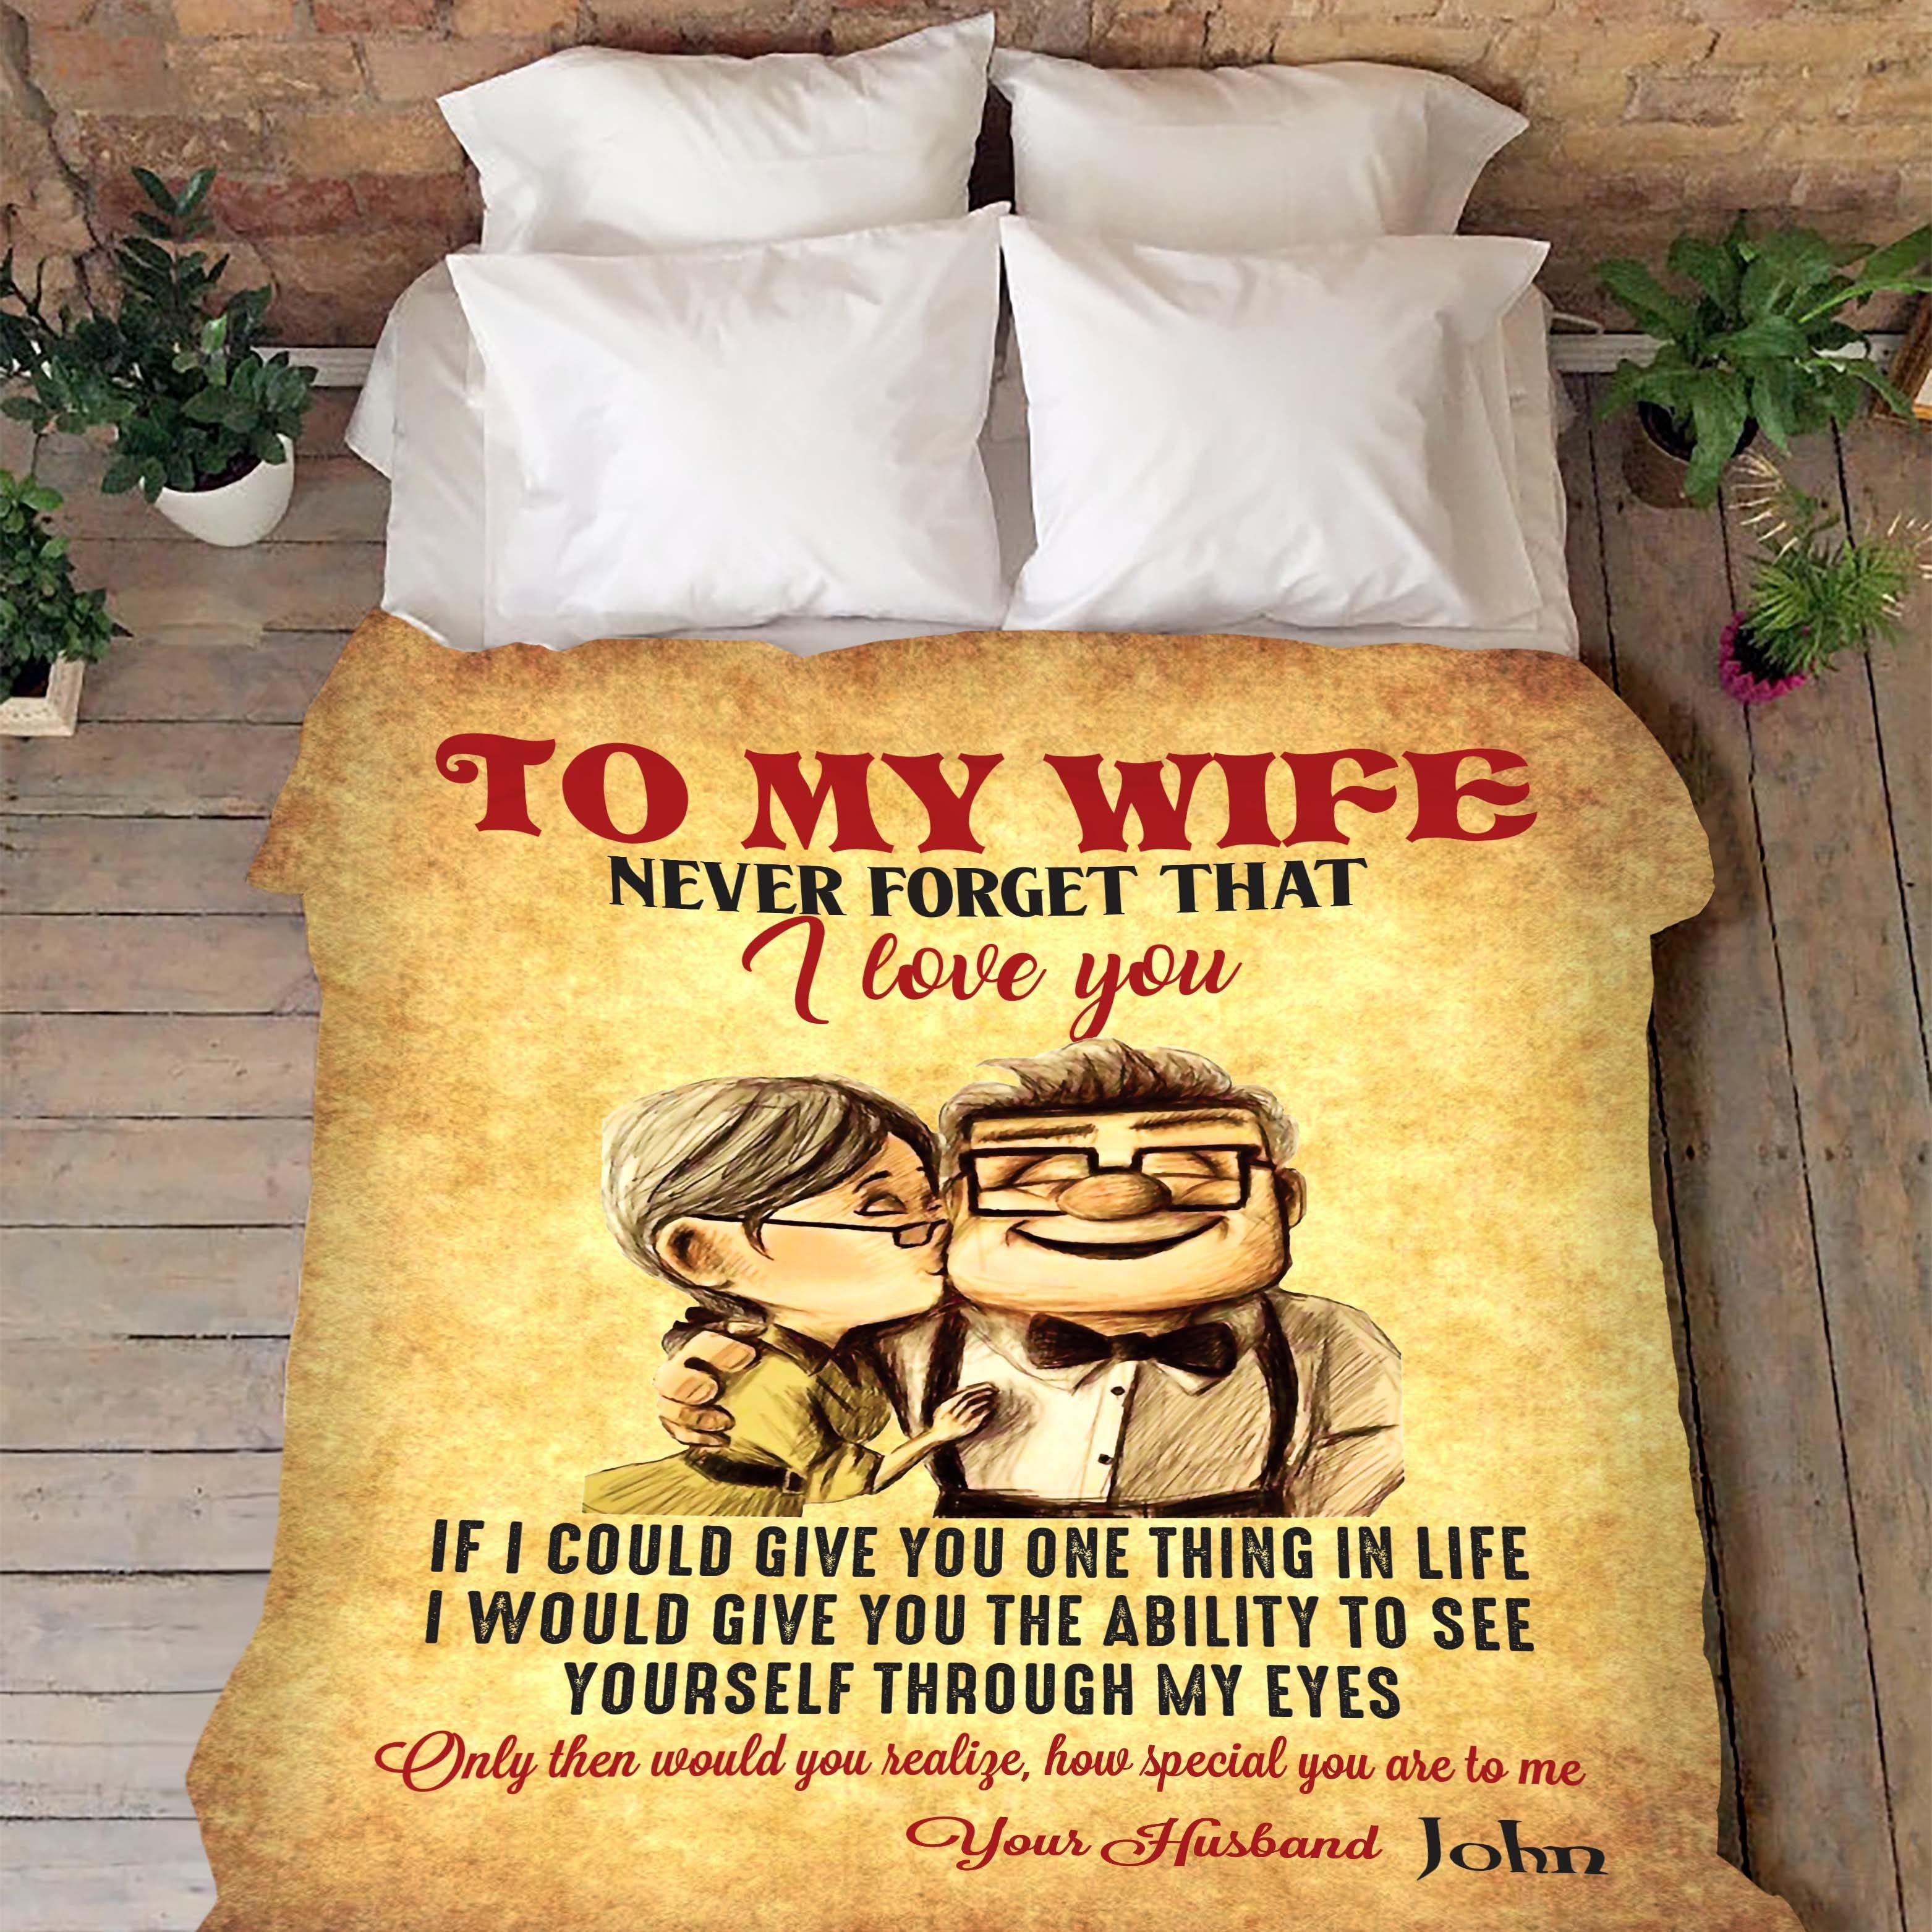 Up movie to my wife never forget that I love you blanket - premium